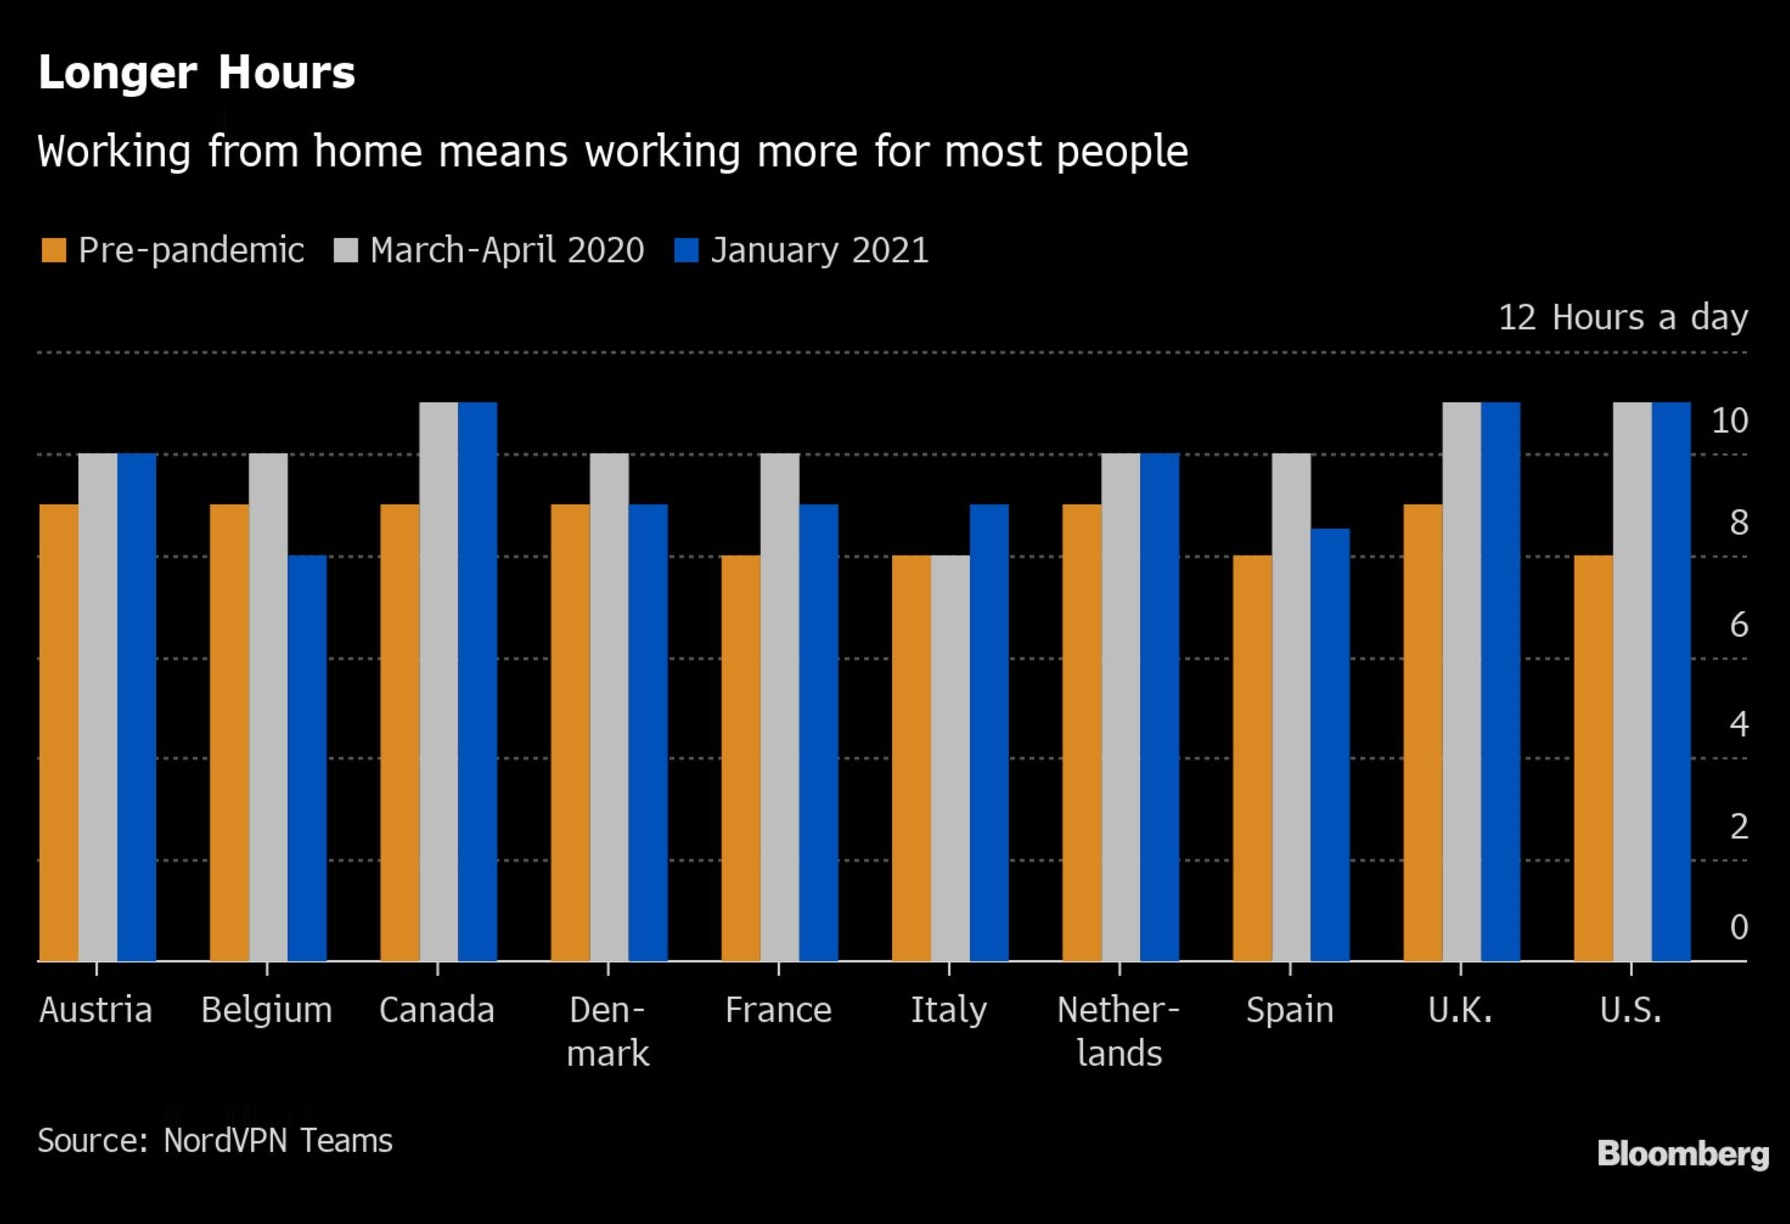 Those who work from home tend to work longer hours.